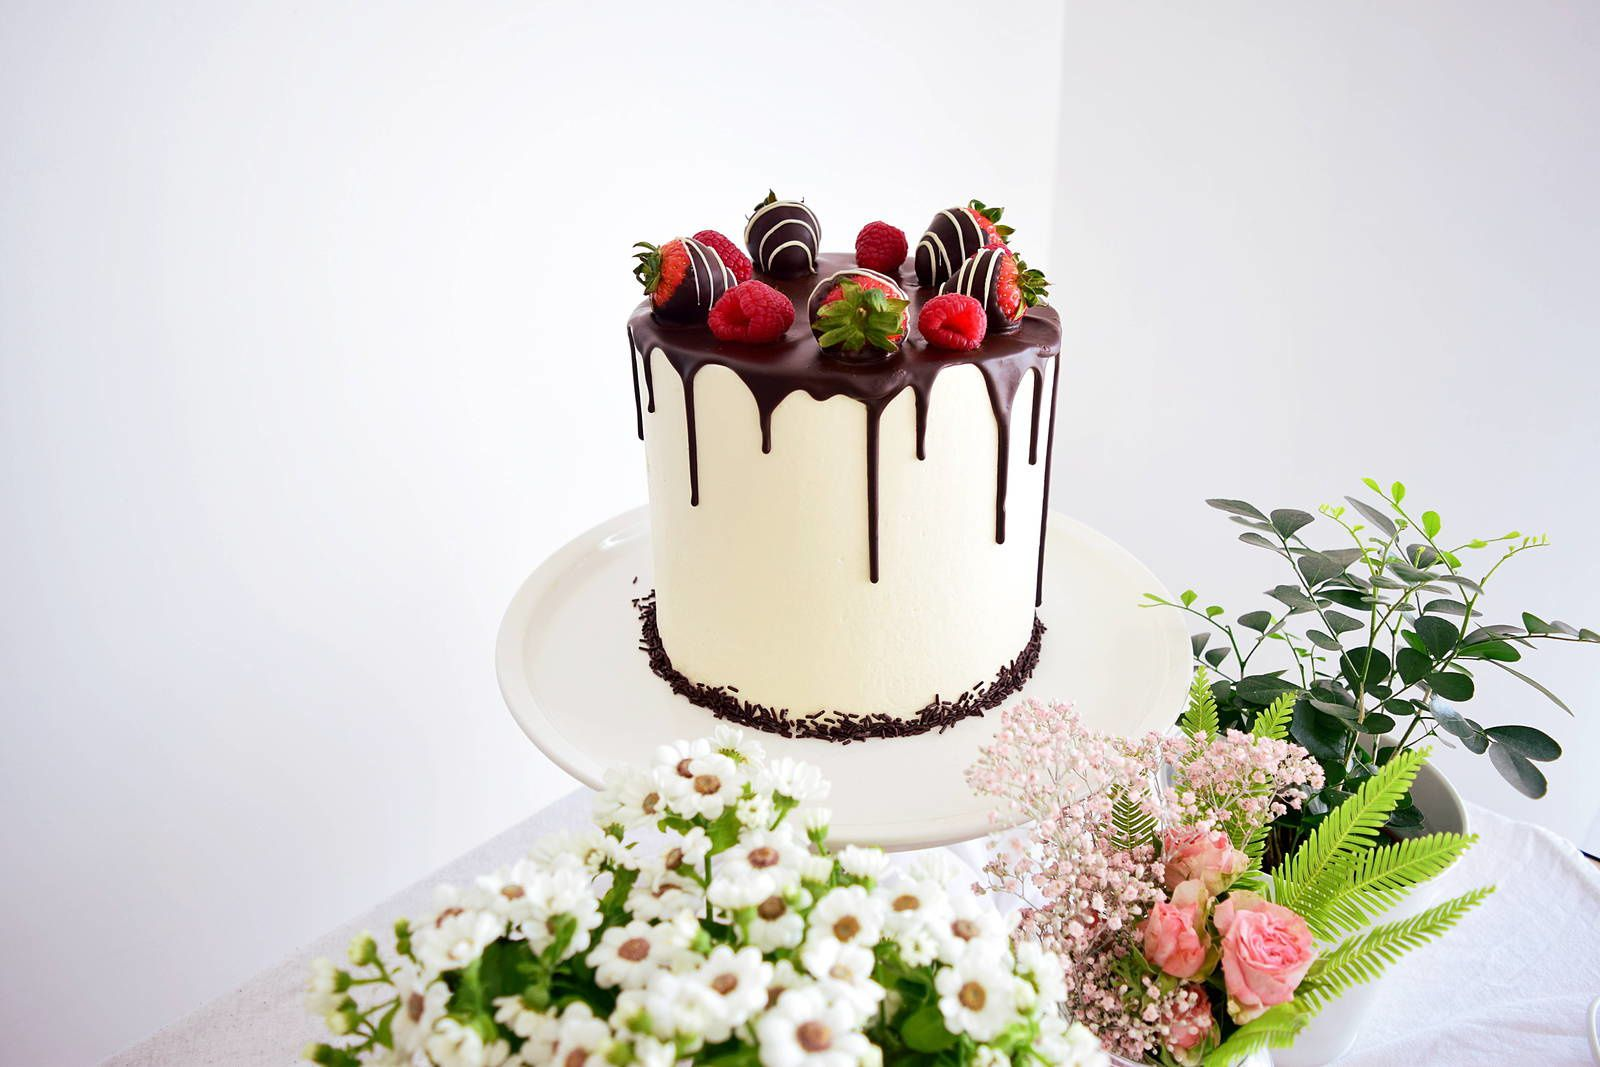 Red fruits layer cake